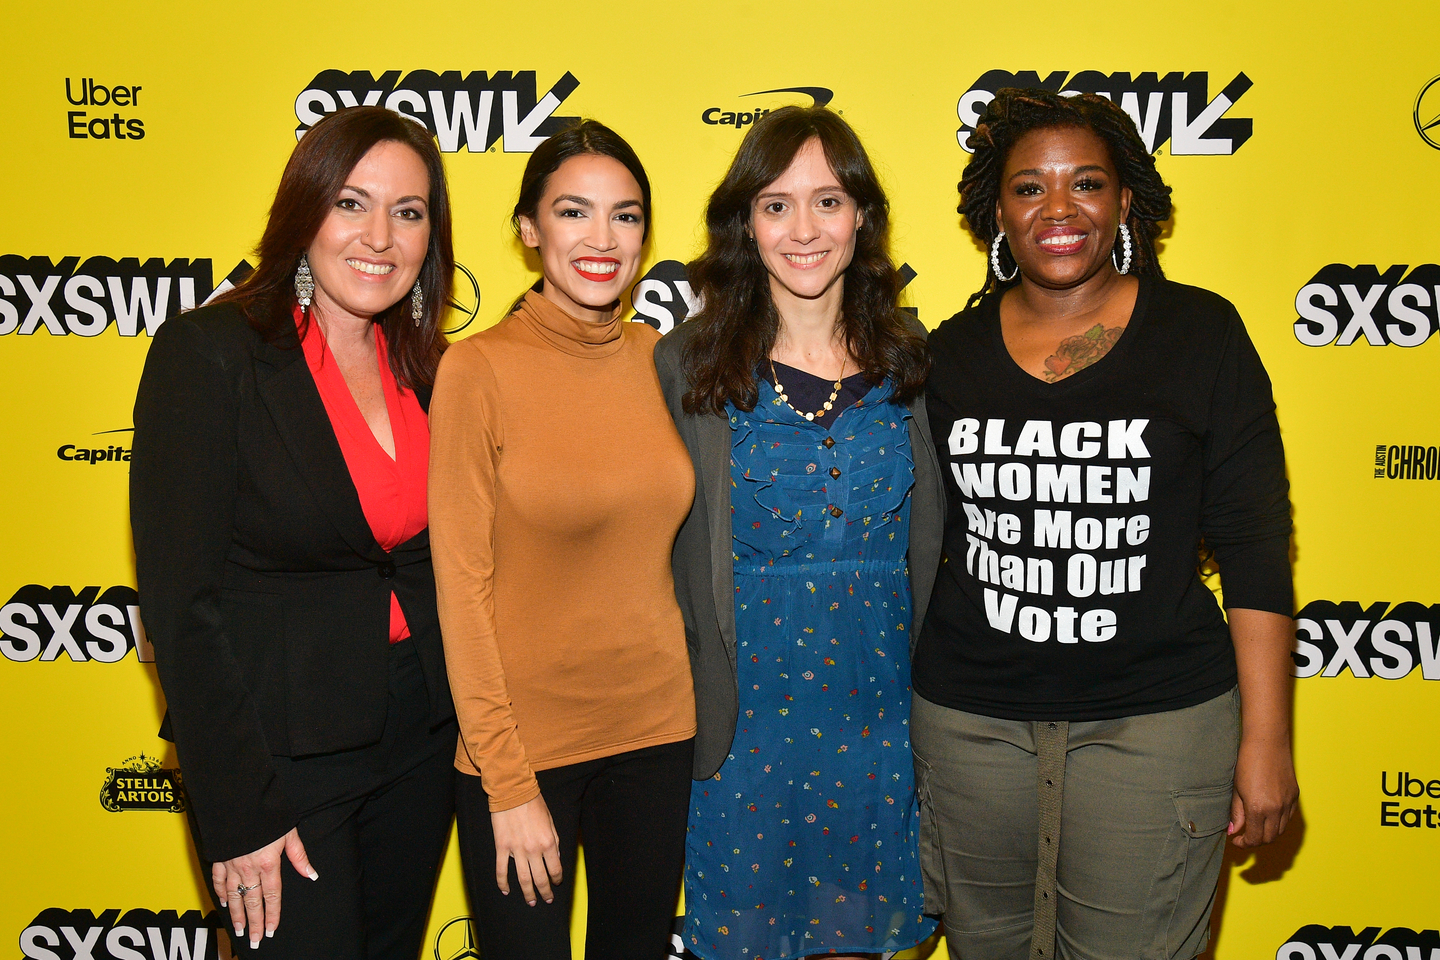 Amy Vilela, Alexandria Ocasio-Cortez, Rachel Lears, and Cori Bush attend the Knock Down The House Premiere at the Paramount Theatre.